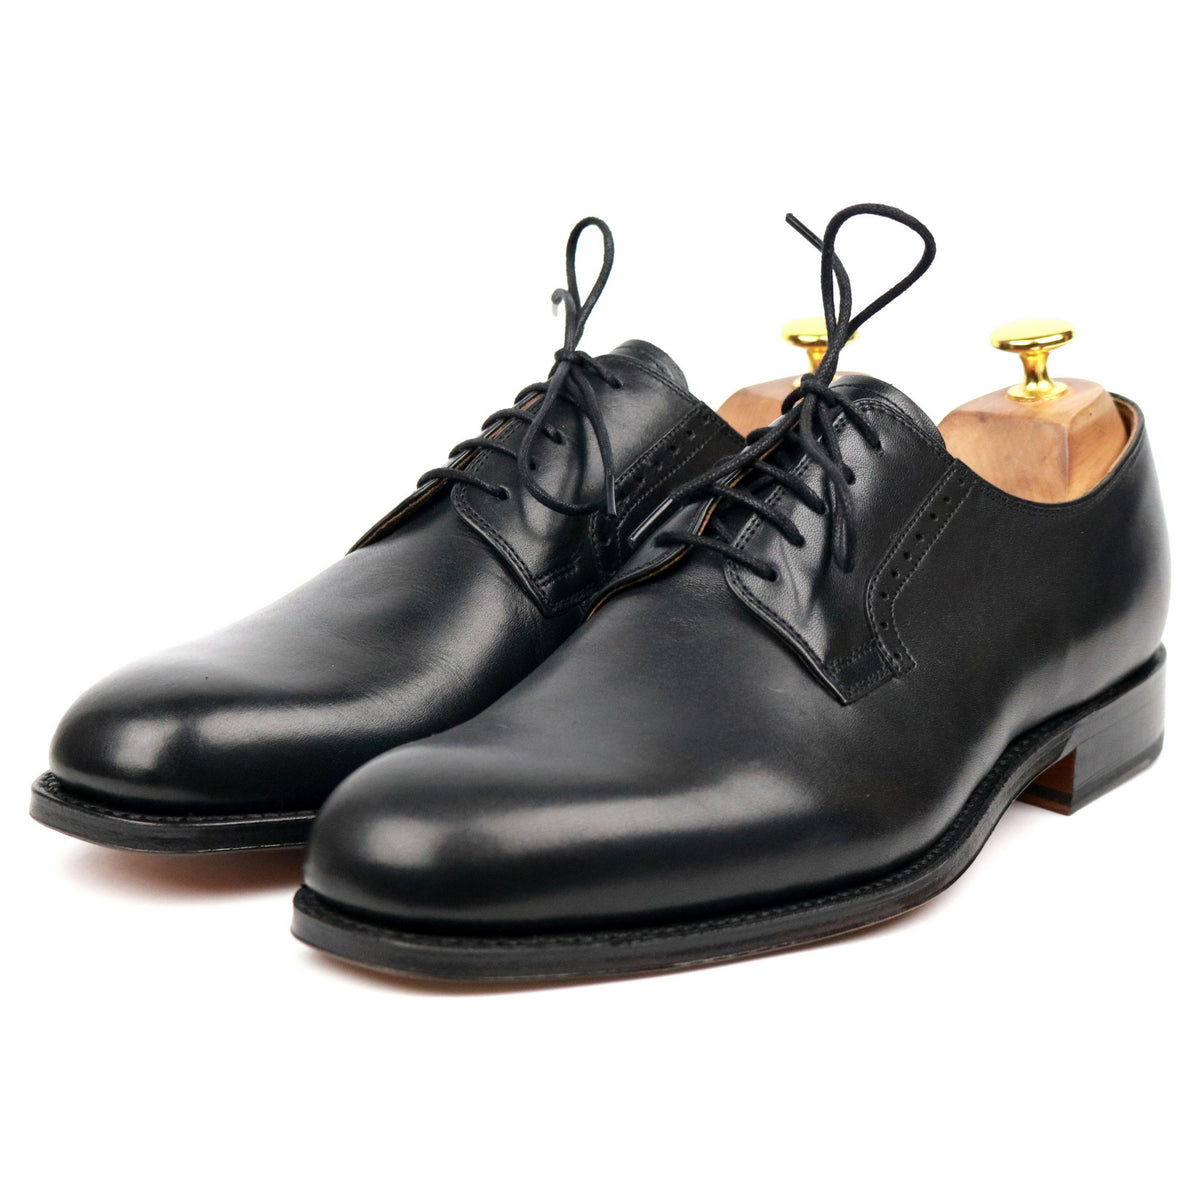 Grenson Black Leather Derby UK 8 F